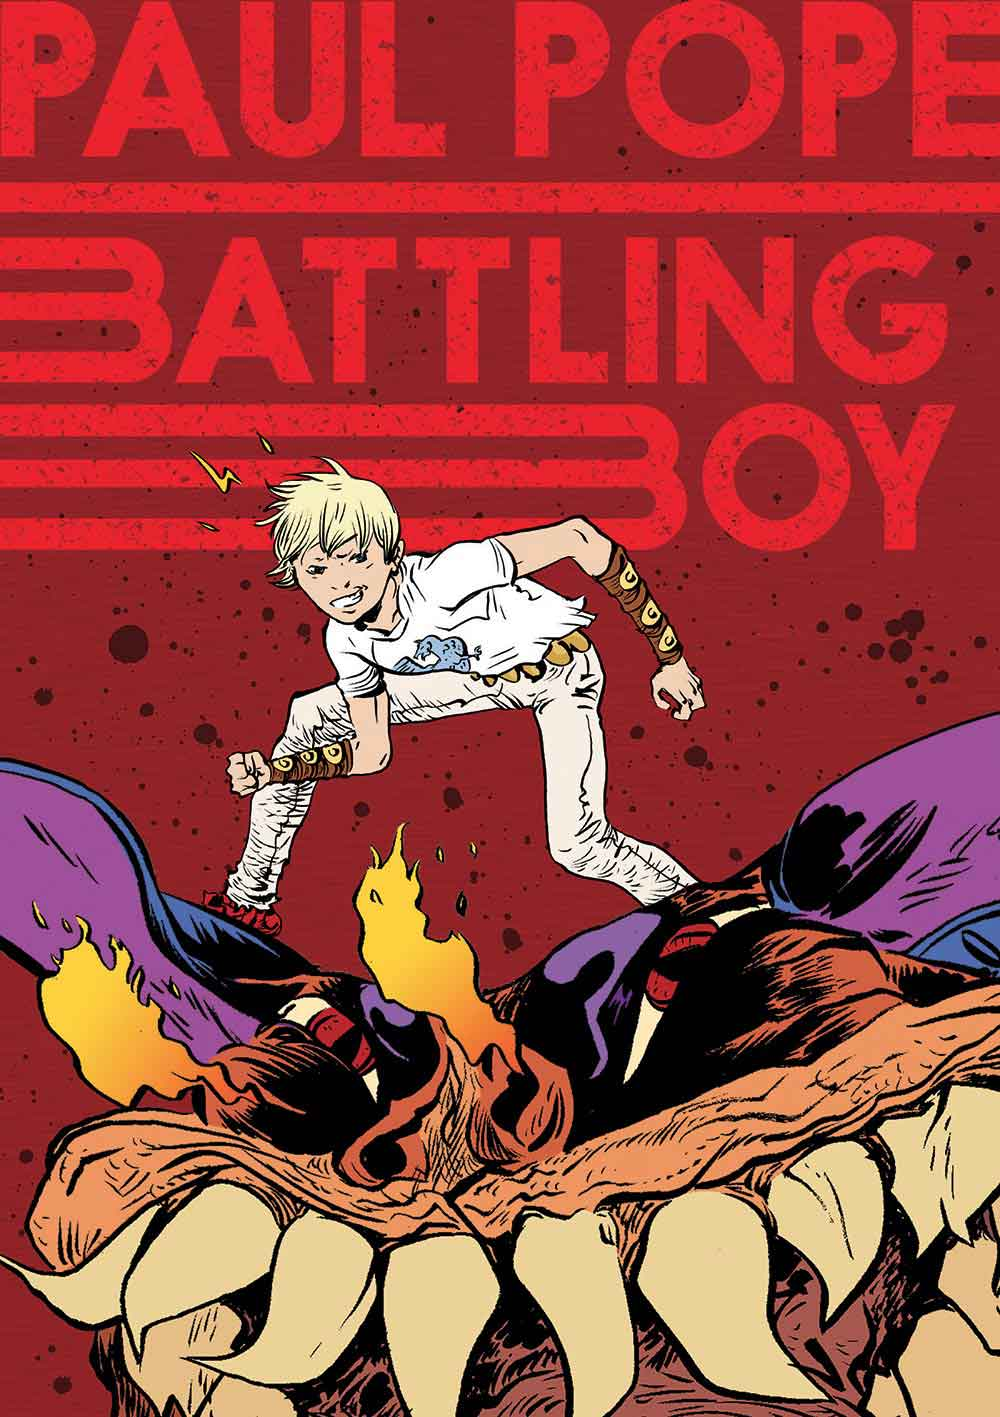 BattlingBoy-pope-portada